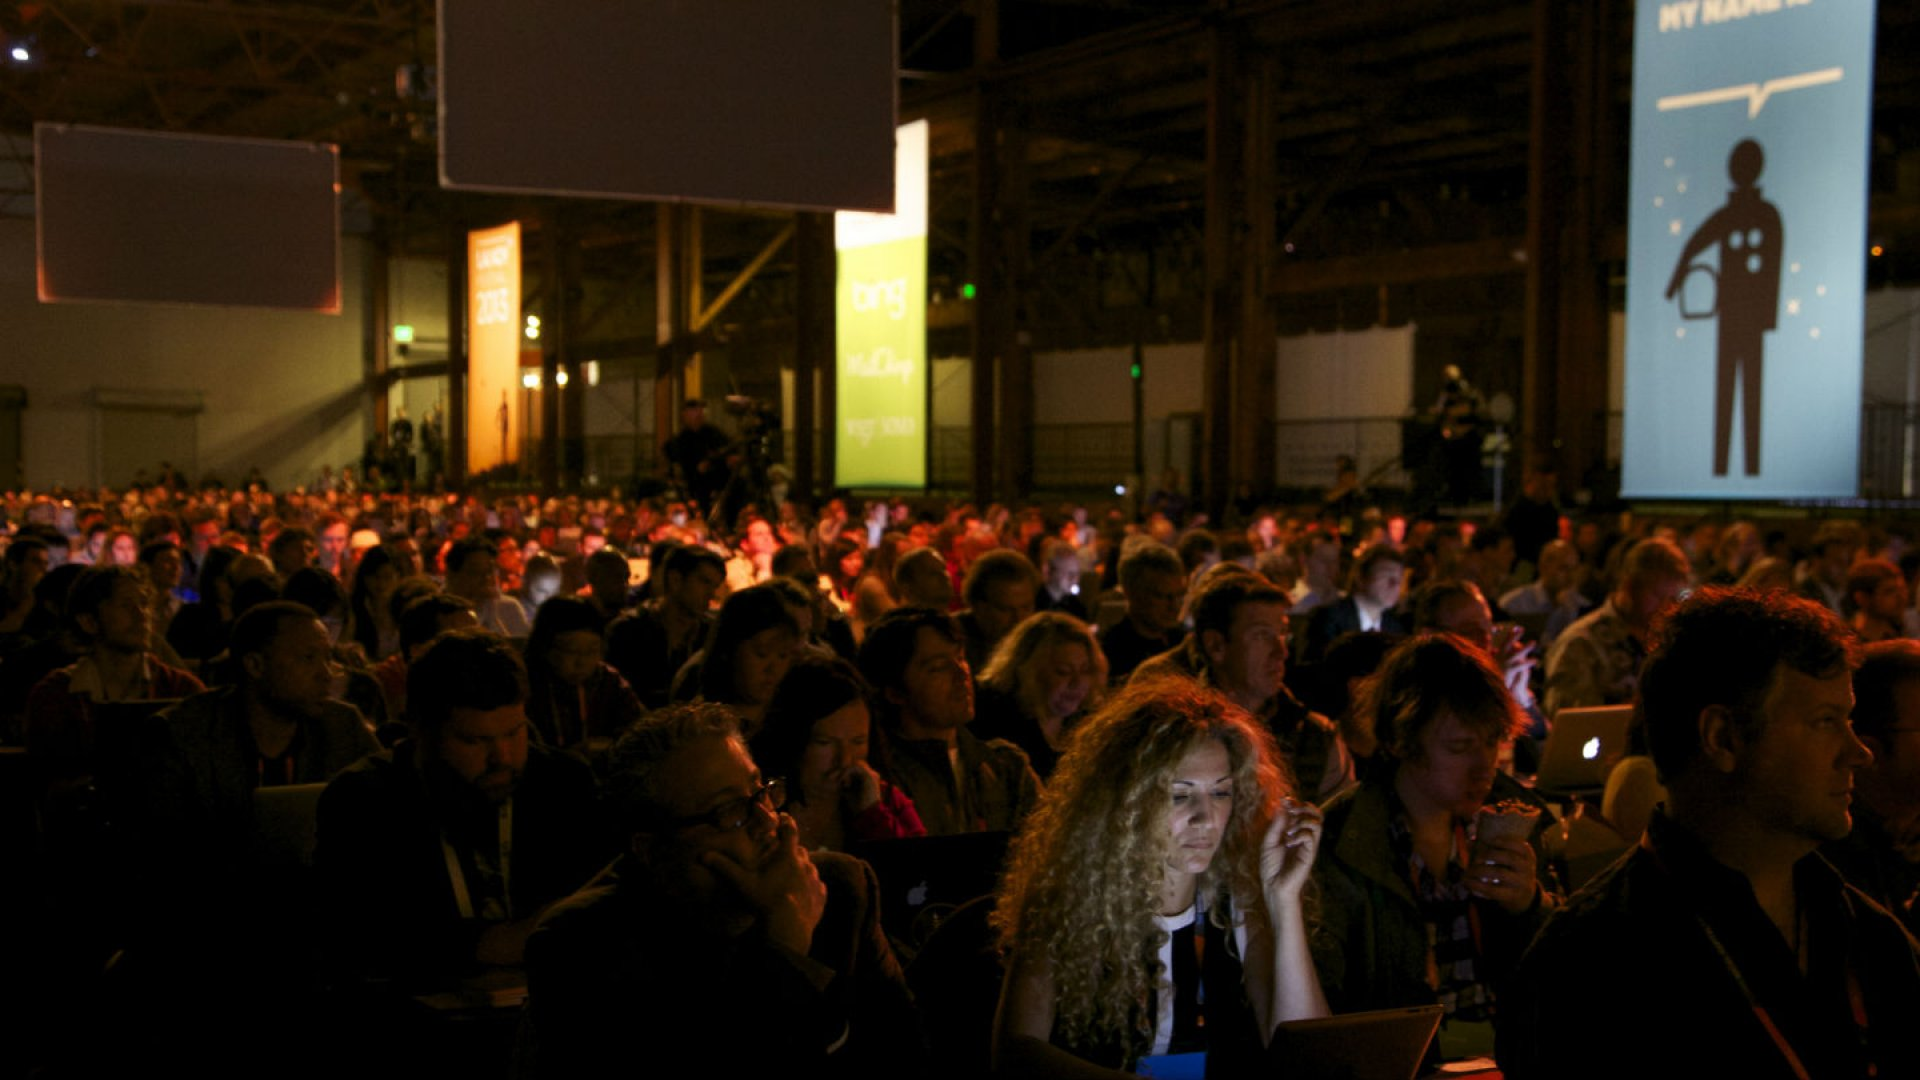 Attendees at the 2013 Launch festival listen to start-ups pitching their ideas.